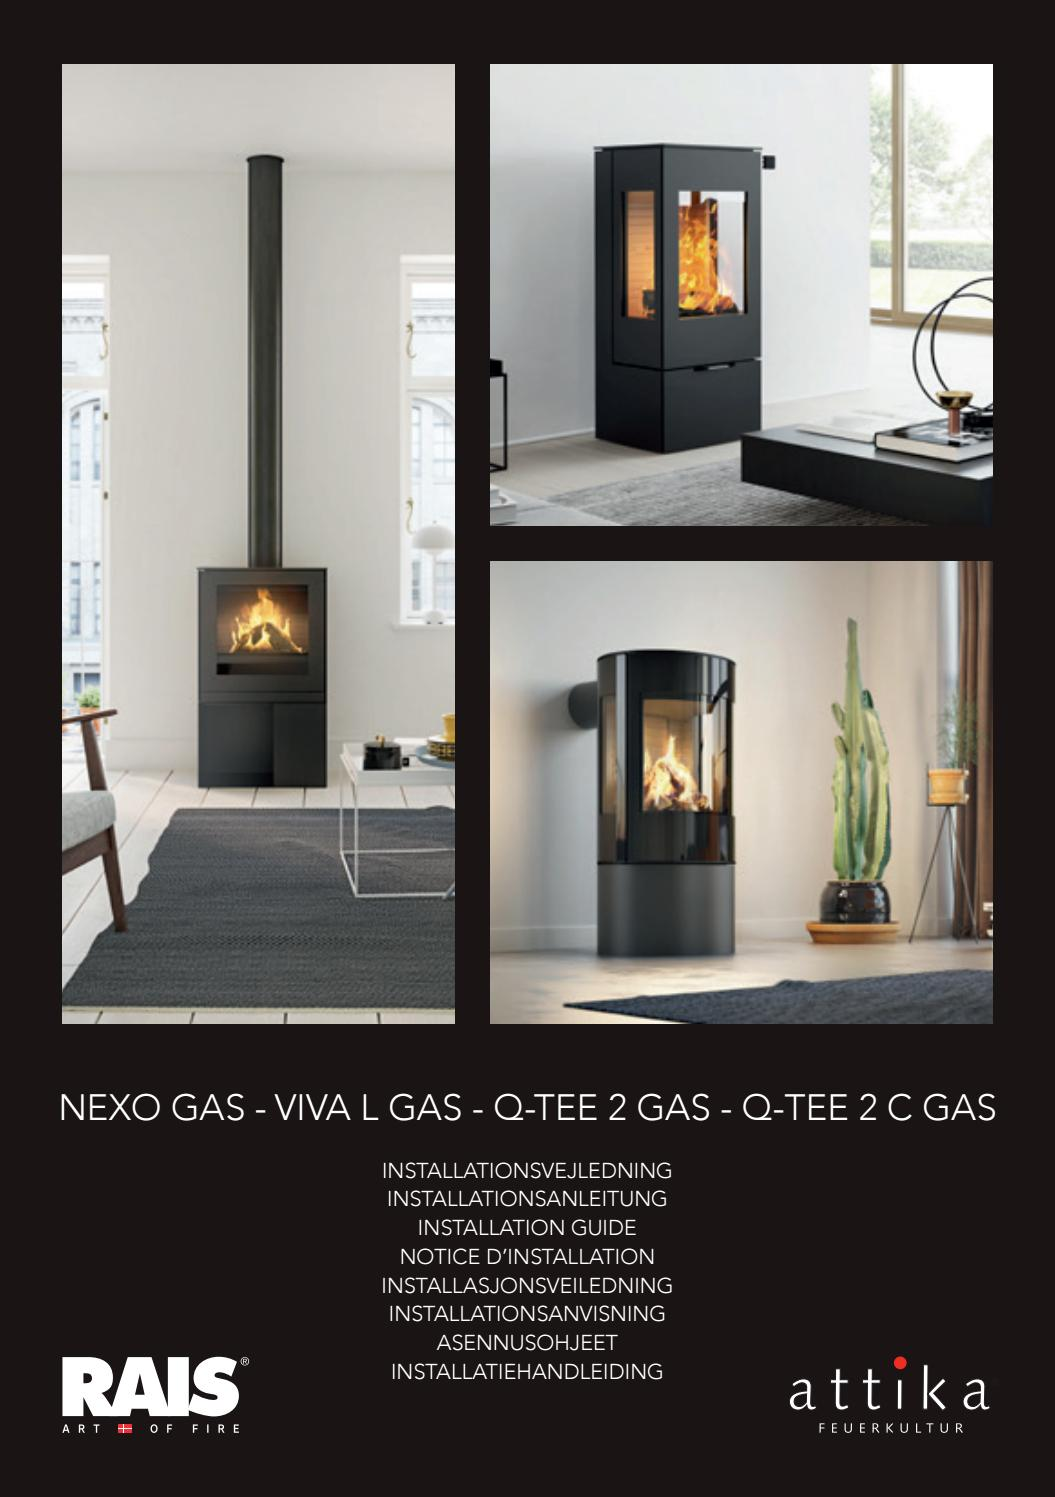 Nexo Gas Viva L Gas Q Tee 2 Gas Q Tee 2 C Gas Installation Manual By Rais A S Issuu